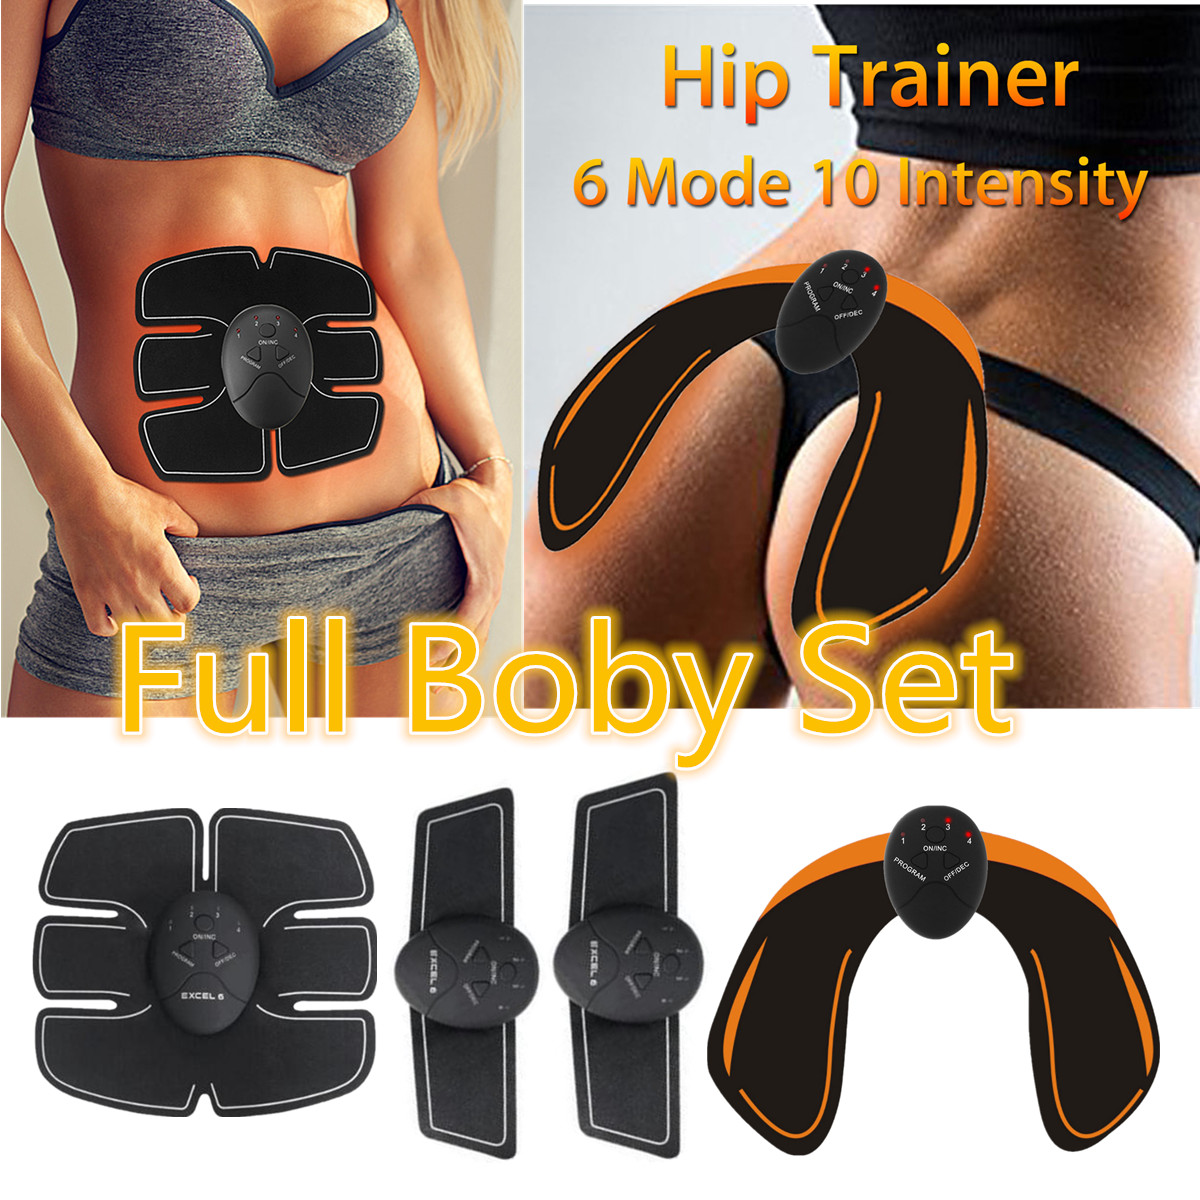 KIFIT Intelligent Trainer Buttocks Lifting Electrical Muscle Training Gear Body Beauty Machine Electric Muscle Trainer Set herbal muscle